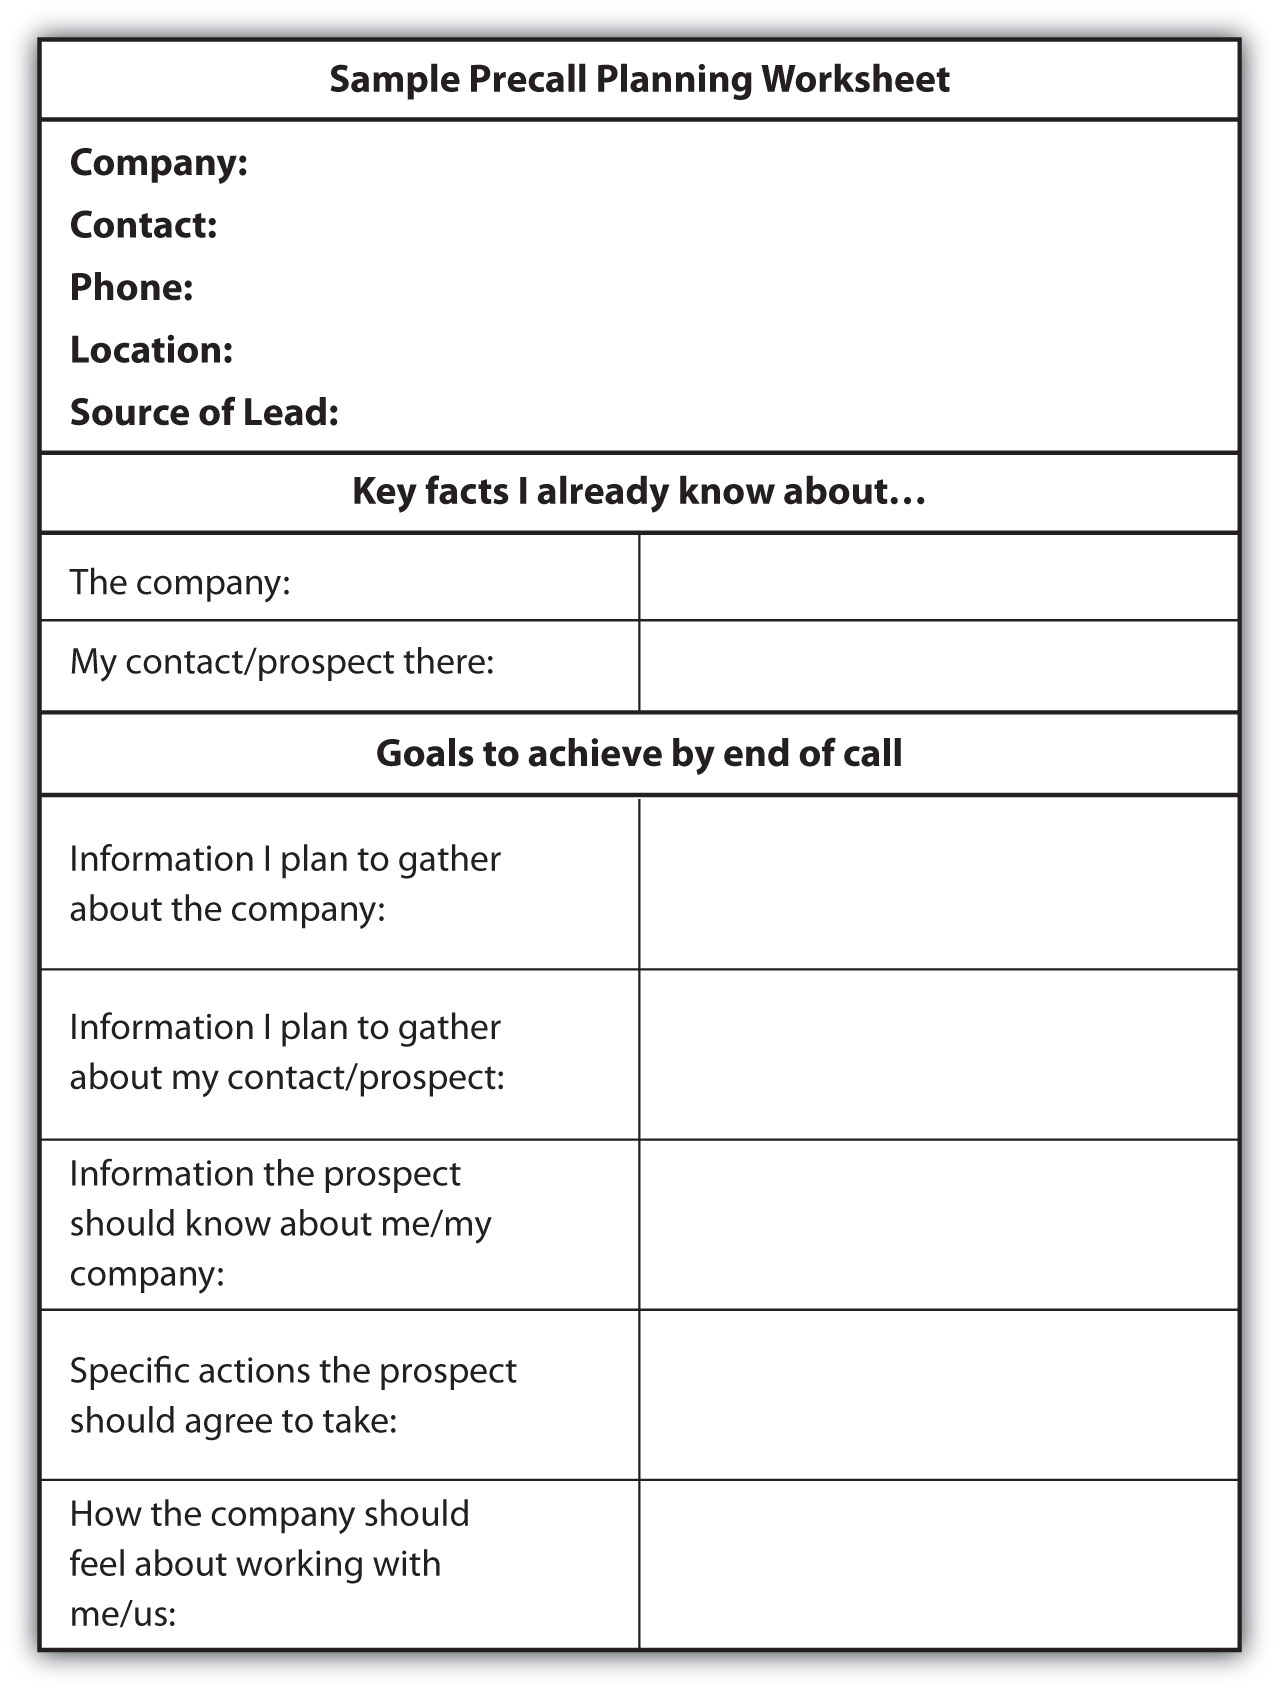 worksheet life goals worksheet worksheet site 5 personal goal setting worksheets templates printable pdf you can use this worksheet in the same way as number 1 to think through what want achieve